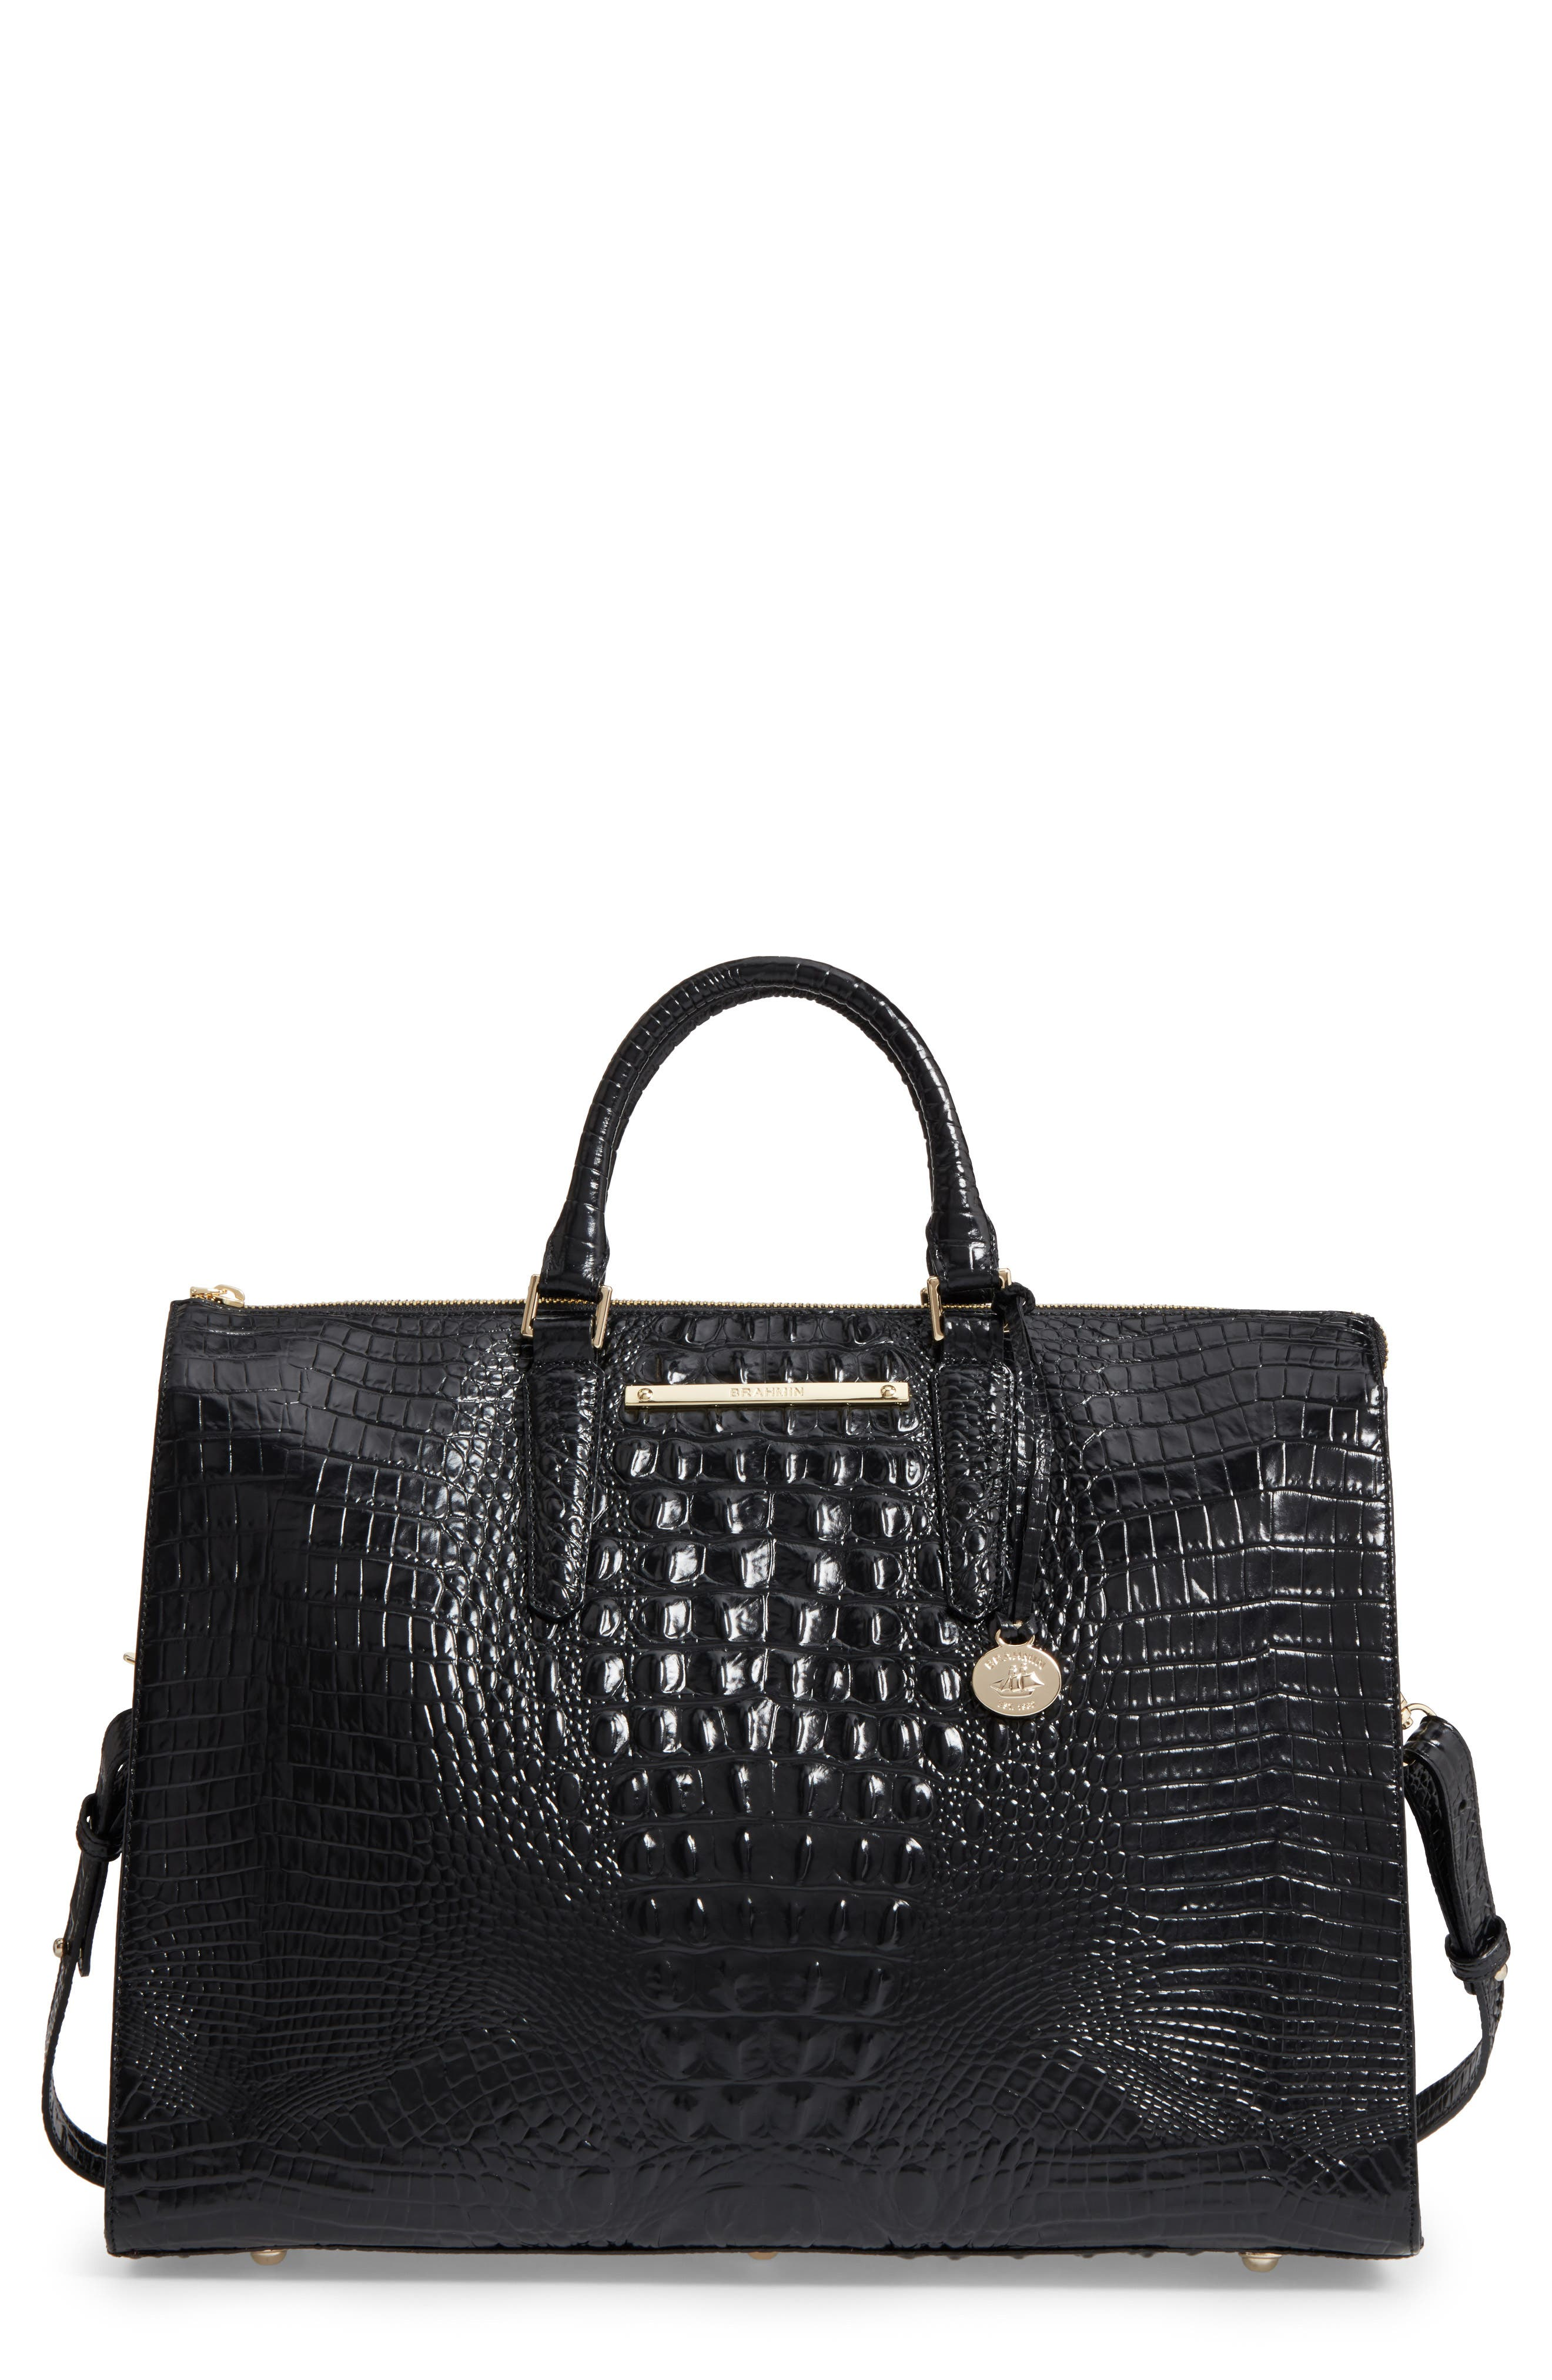 Brahmin Melbourne Croc Embossed Leather Business Tote